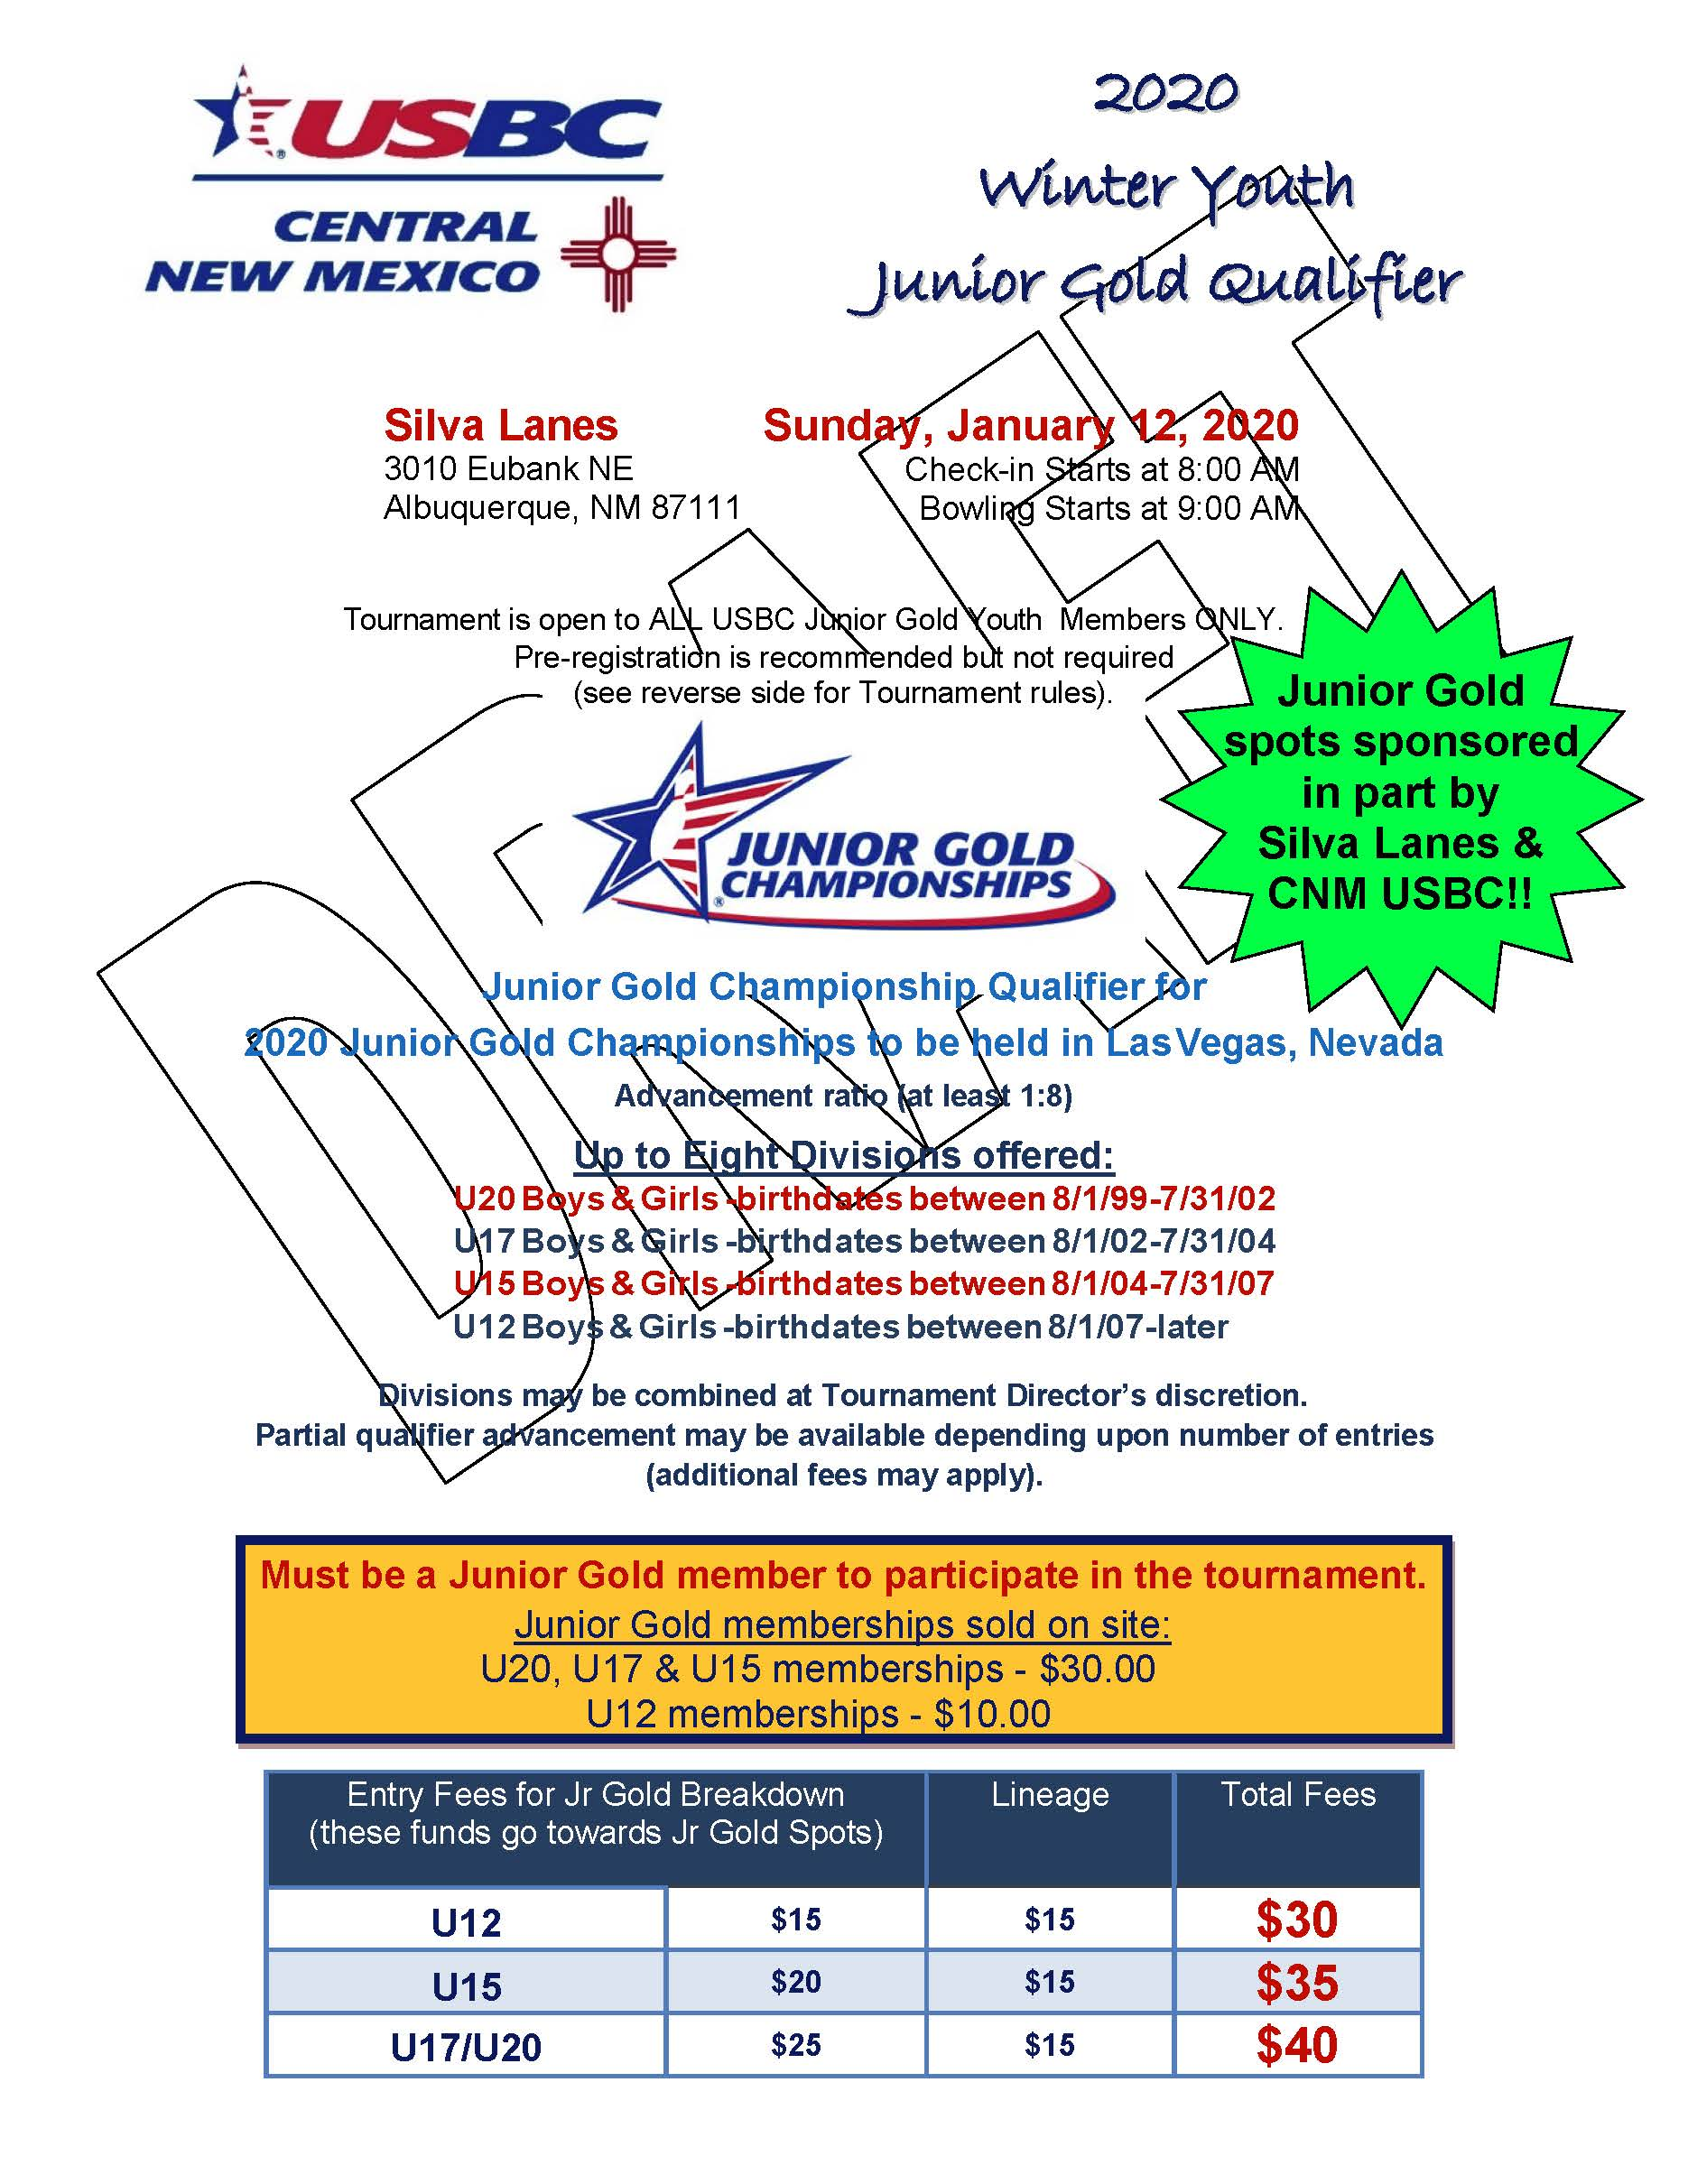 Winter Youth Junior Gold Qualifier Cnm Usbc